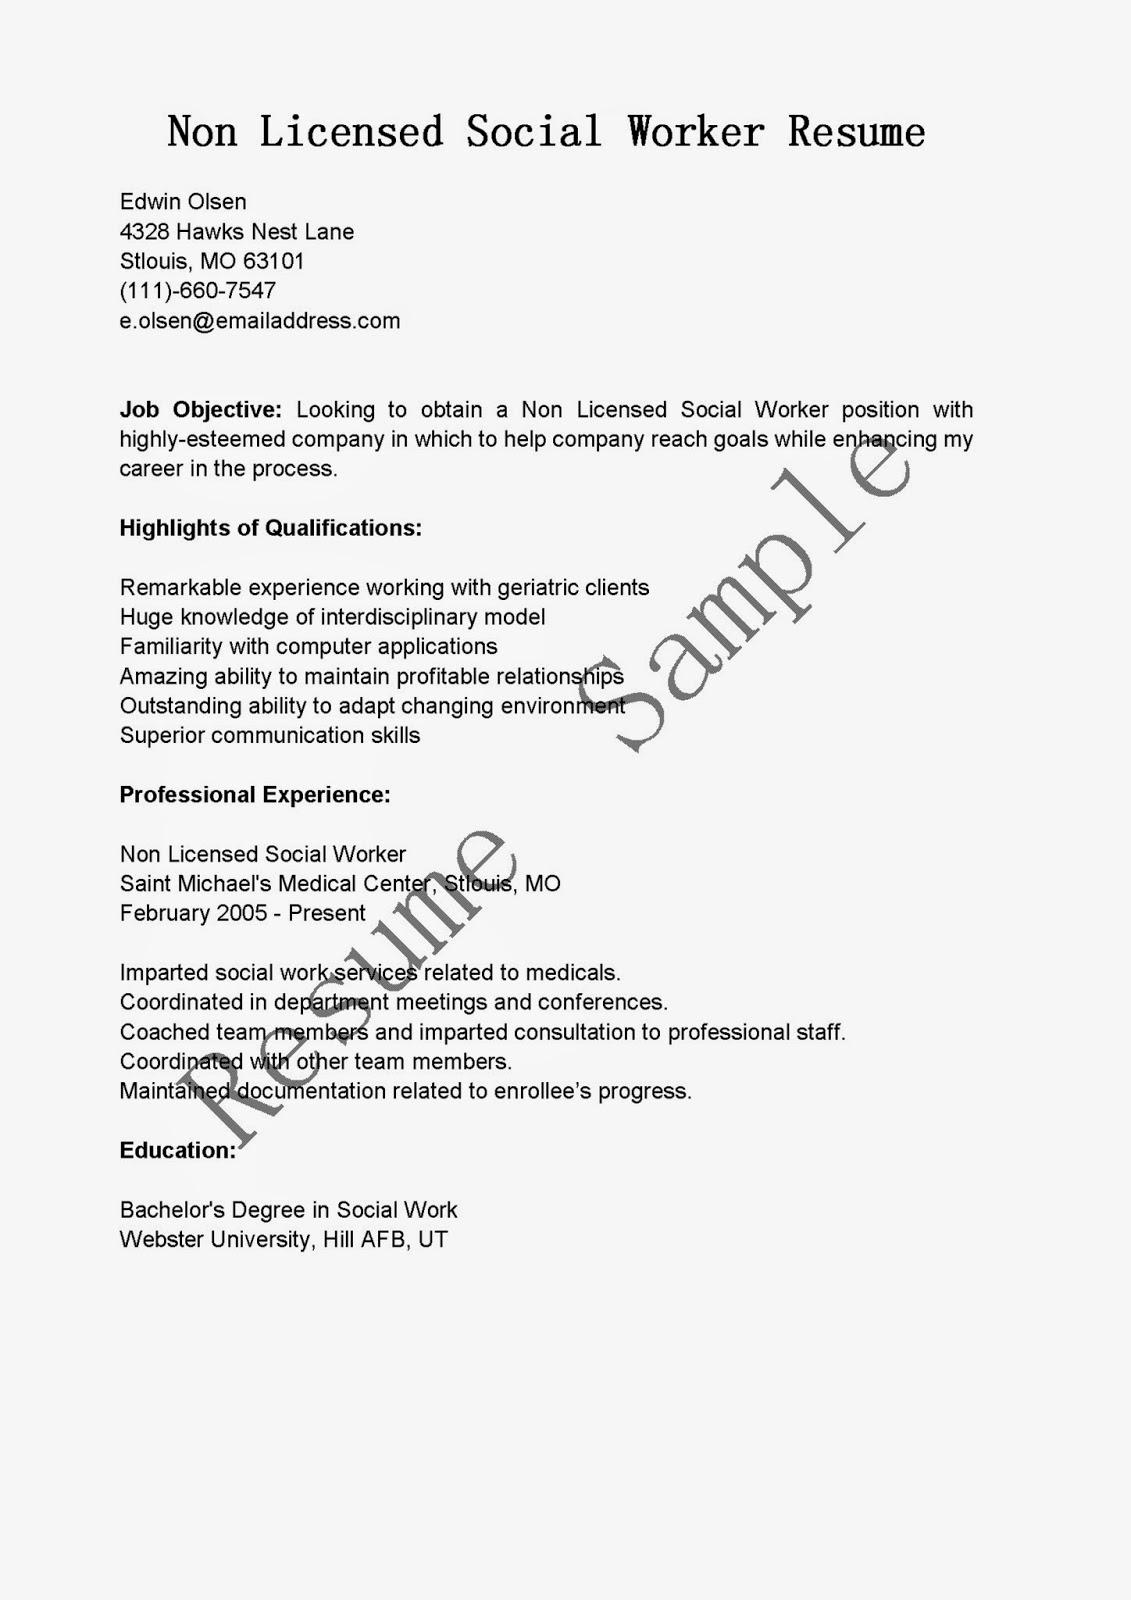 resume samples  non licensed social worker resume sample